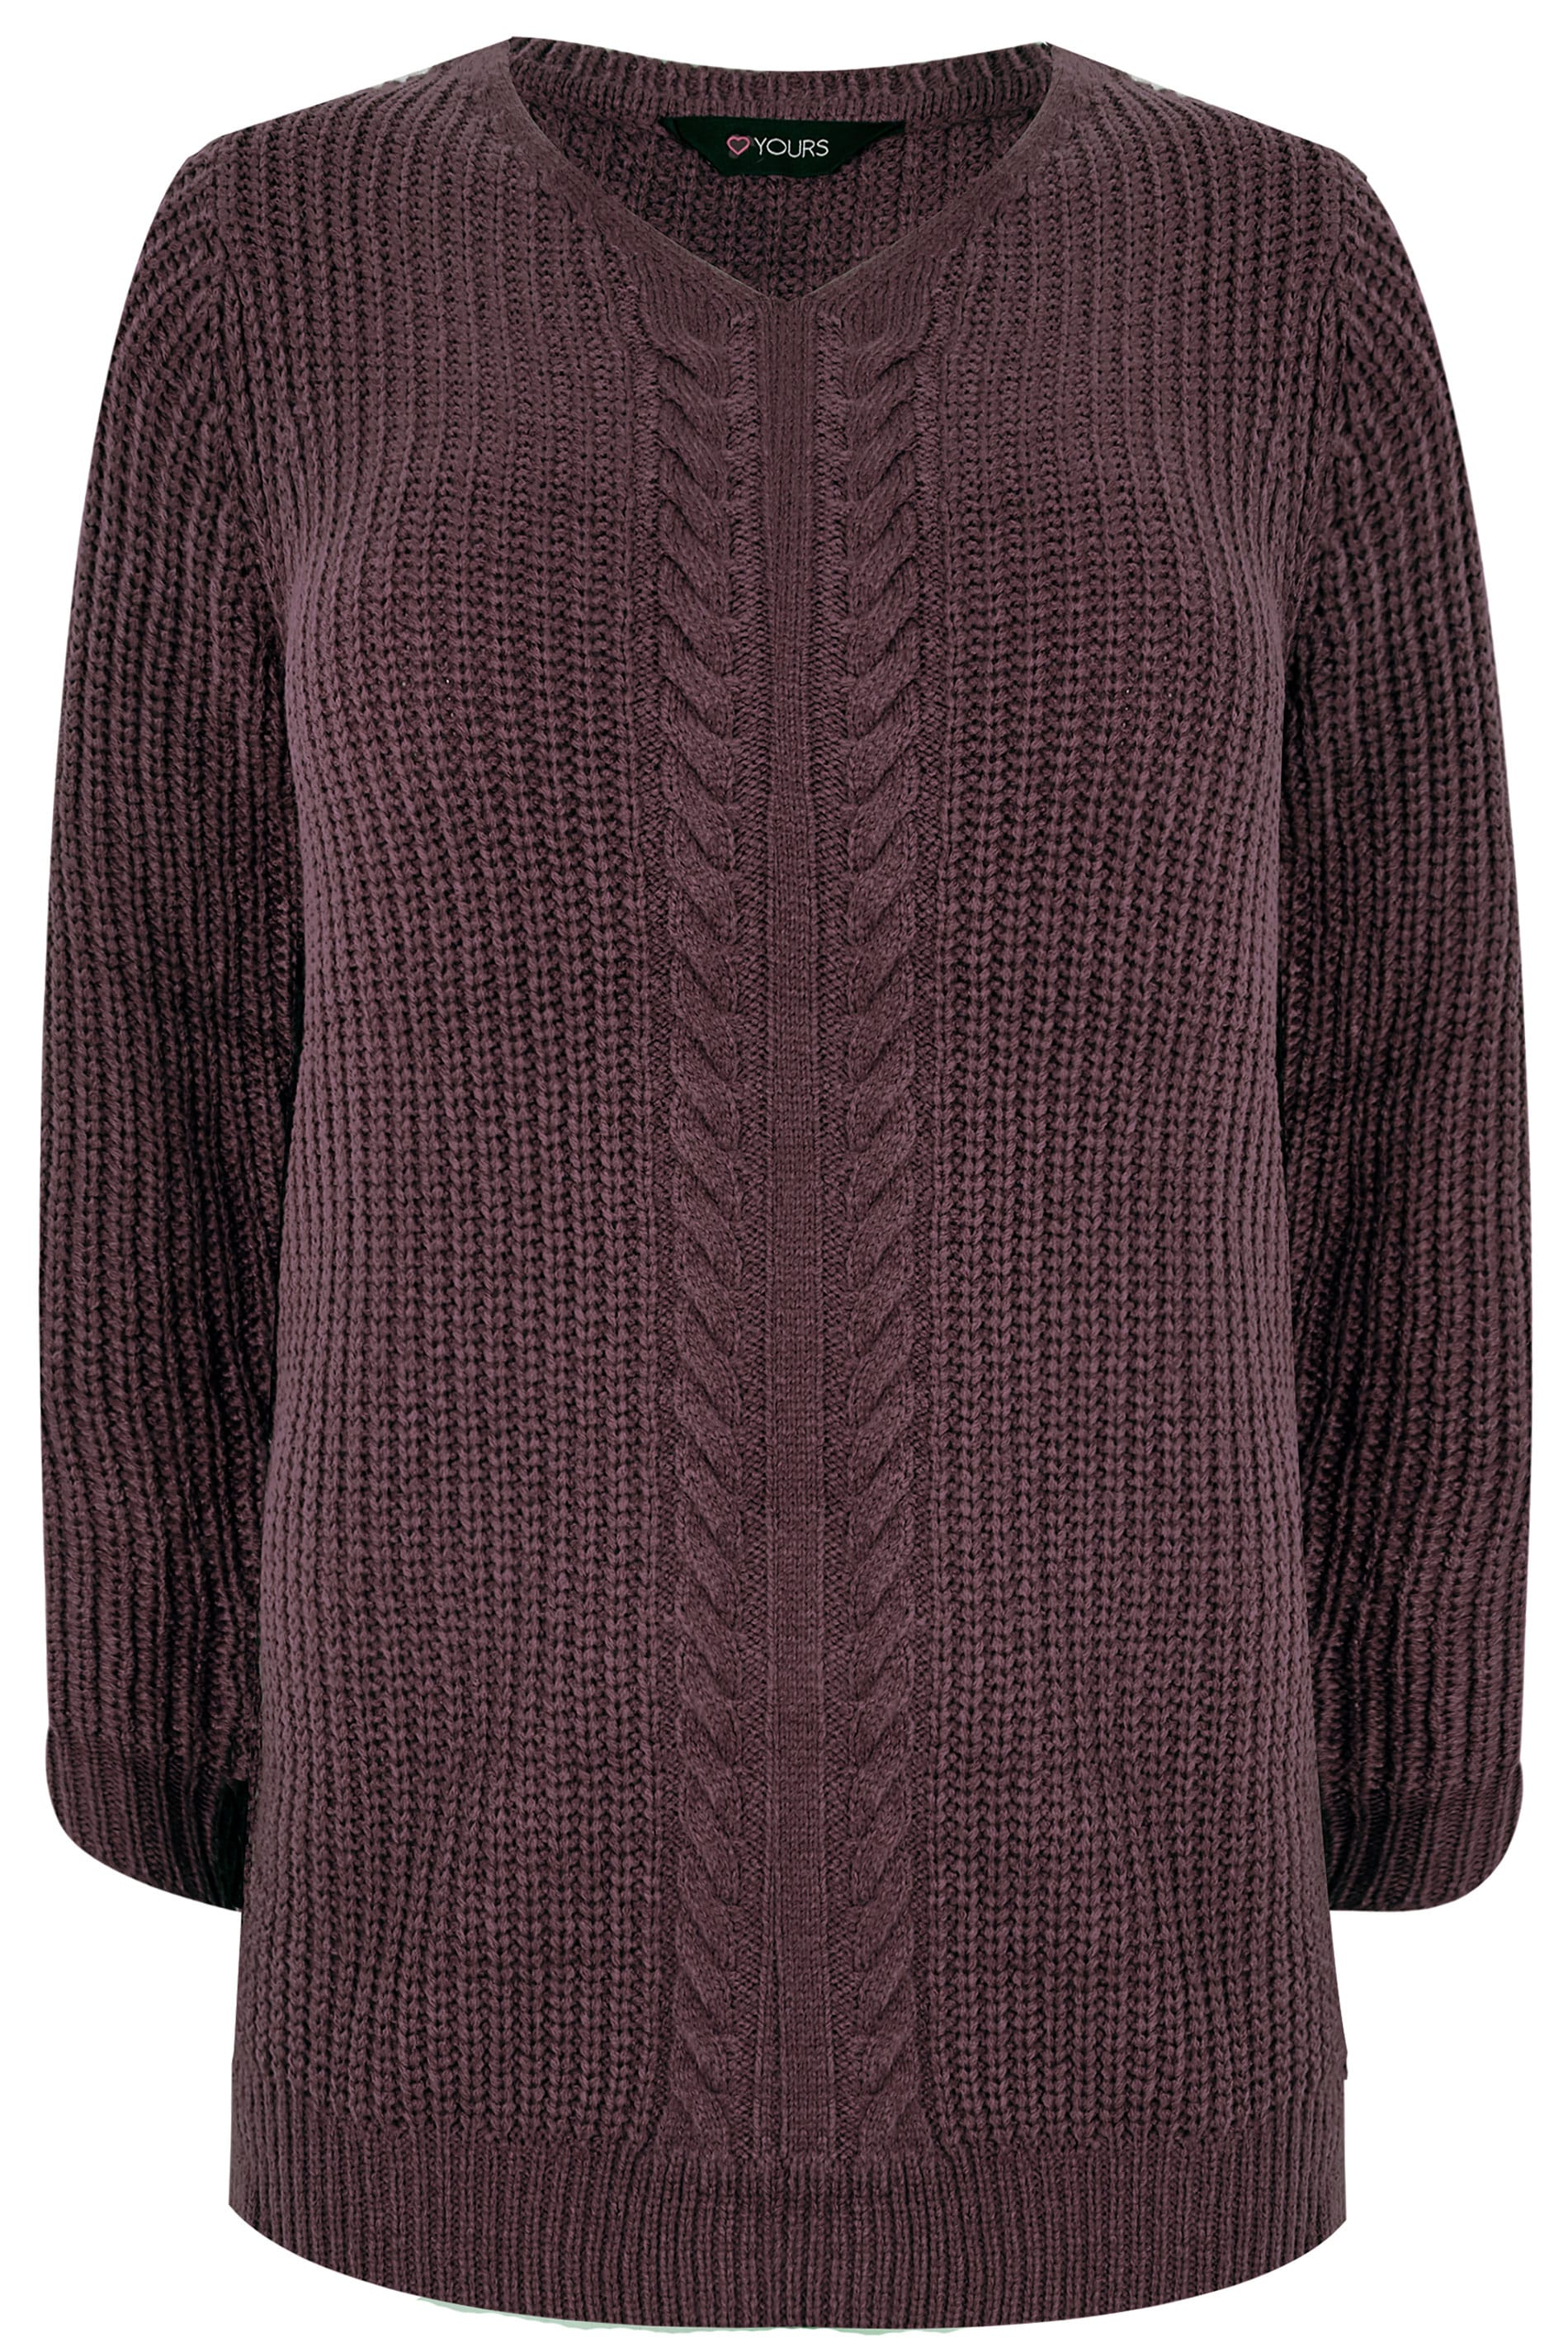 58a1f882de Burgundy Cable Knit Jumper